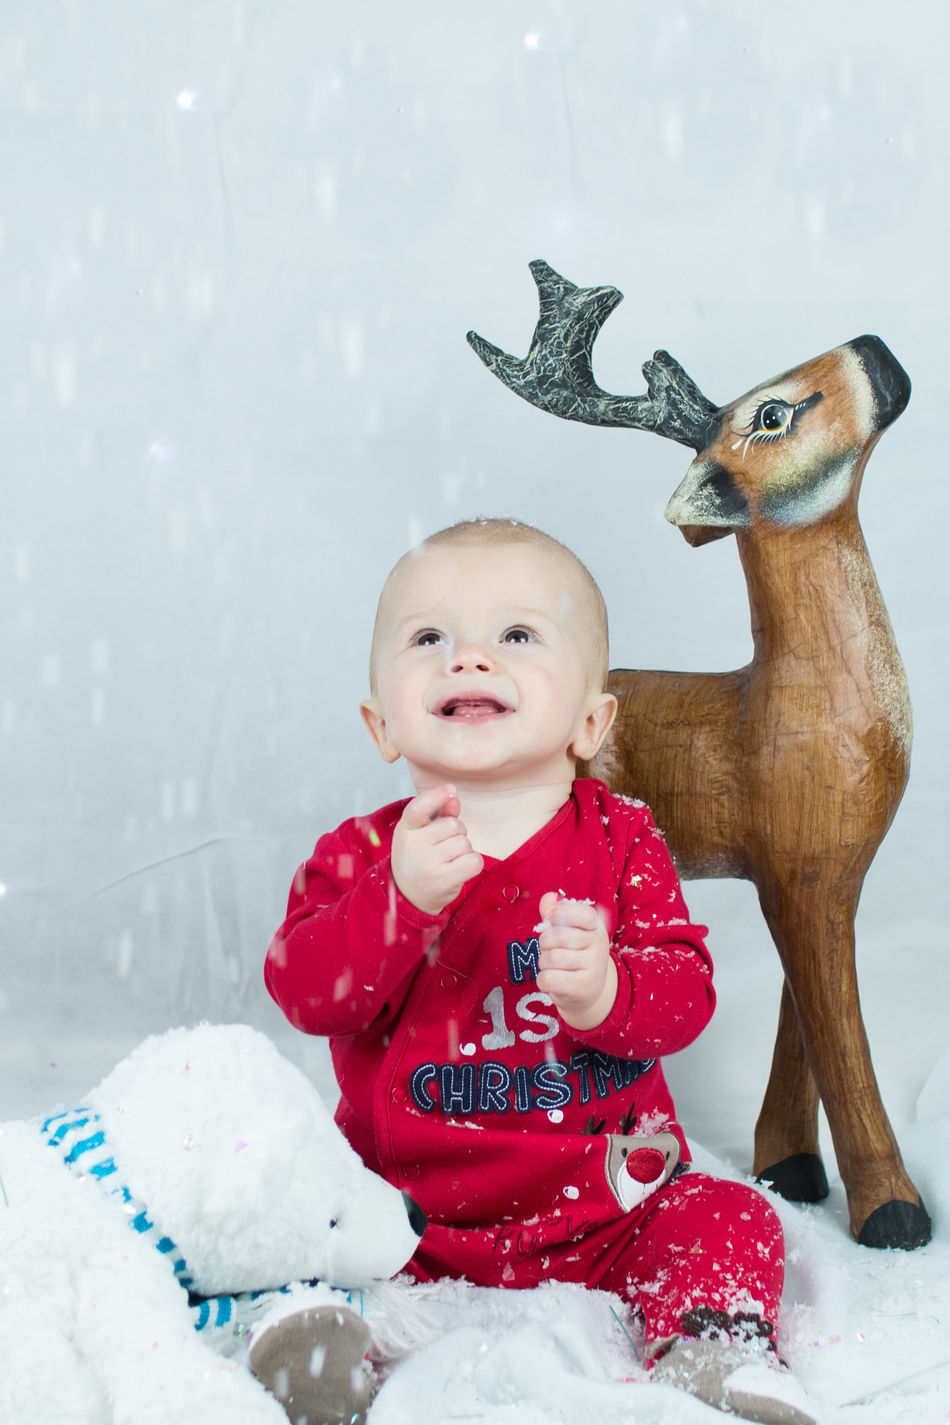 Joyful snow Babies Only Baby Baby Photoshoo Babyhood Cheerful Childhood Christmas Fun Cute Baby Day Festive Fun Full Length Happy Baby Indoors  Let It Snow One Person People Red Smiling Snow Snowflake Snowing Streamzoofamily Winter